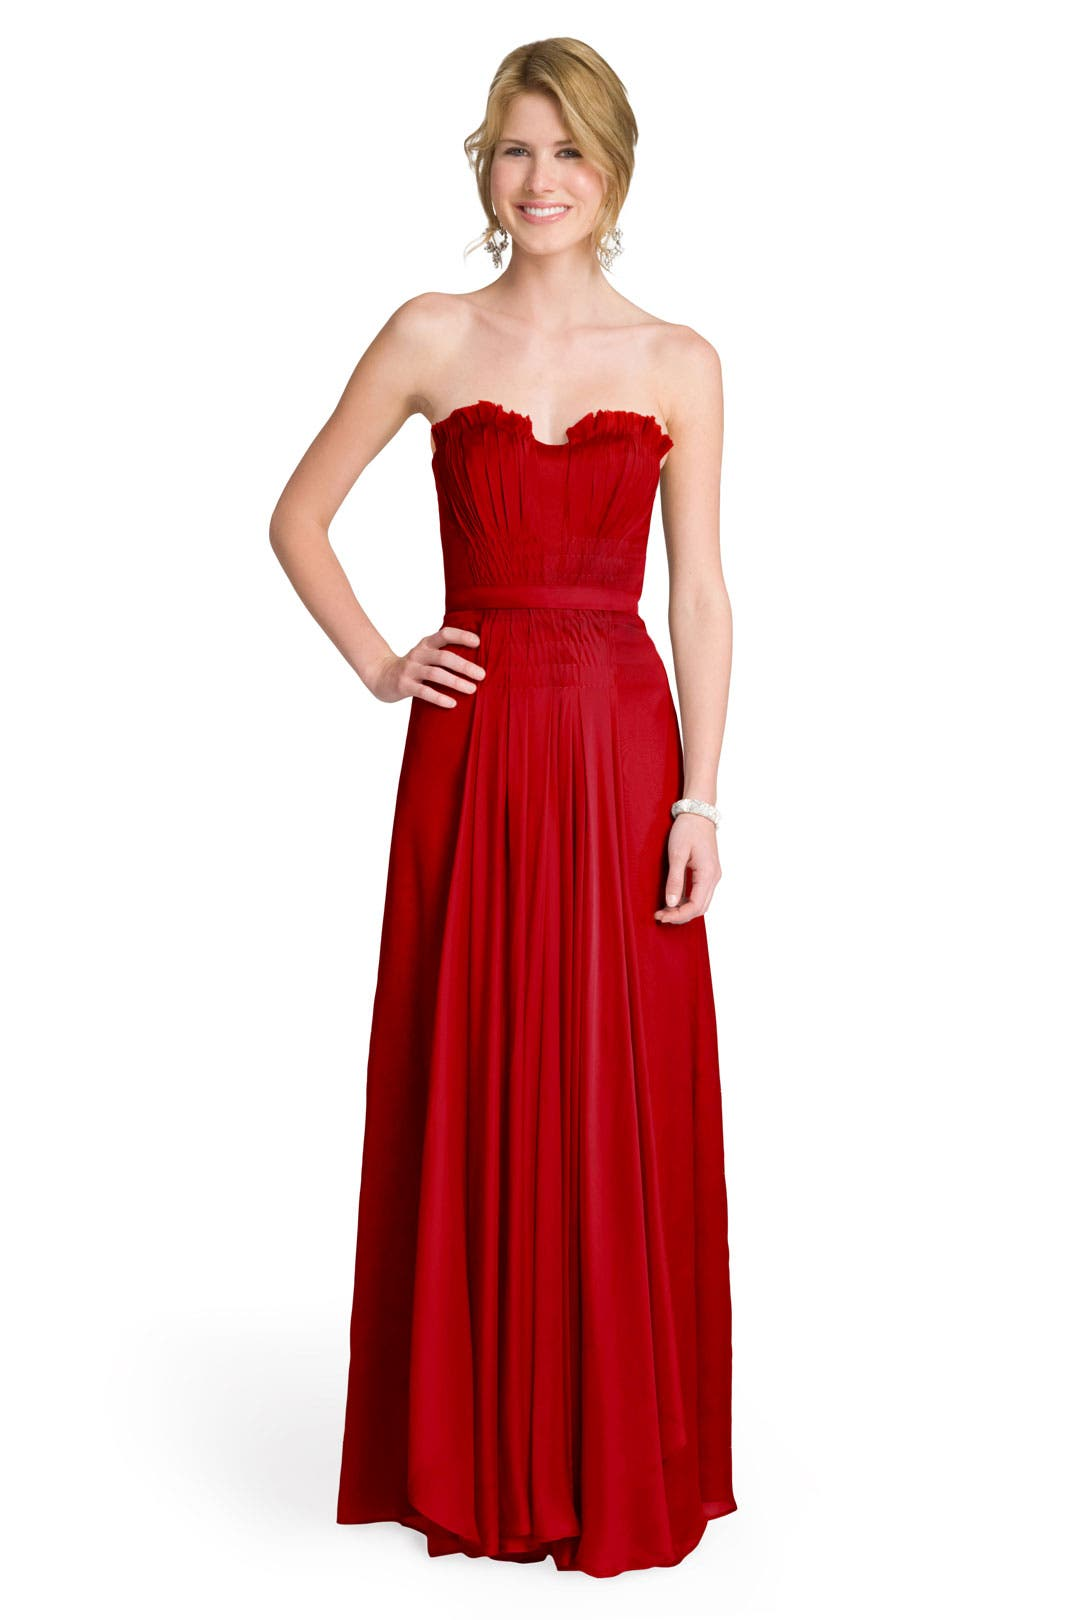 Crimson Princess Gown by Bibhu Mohapatra